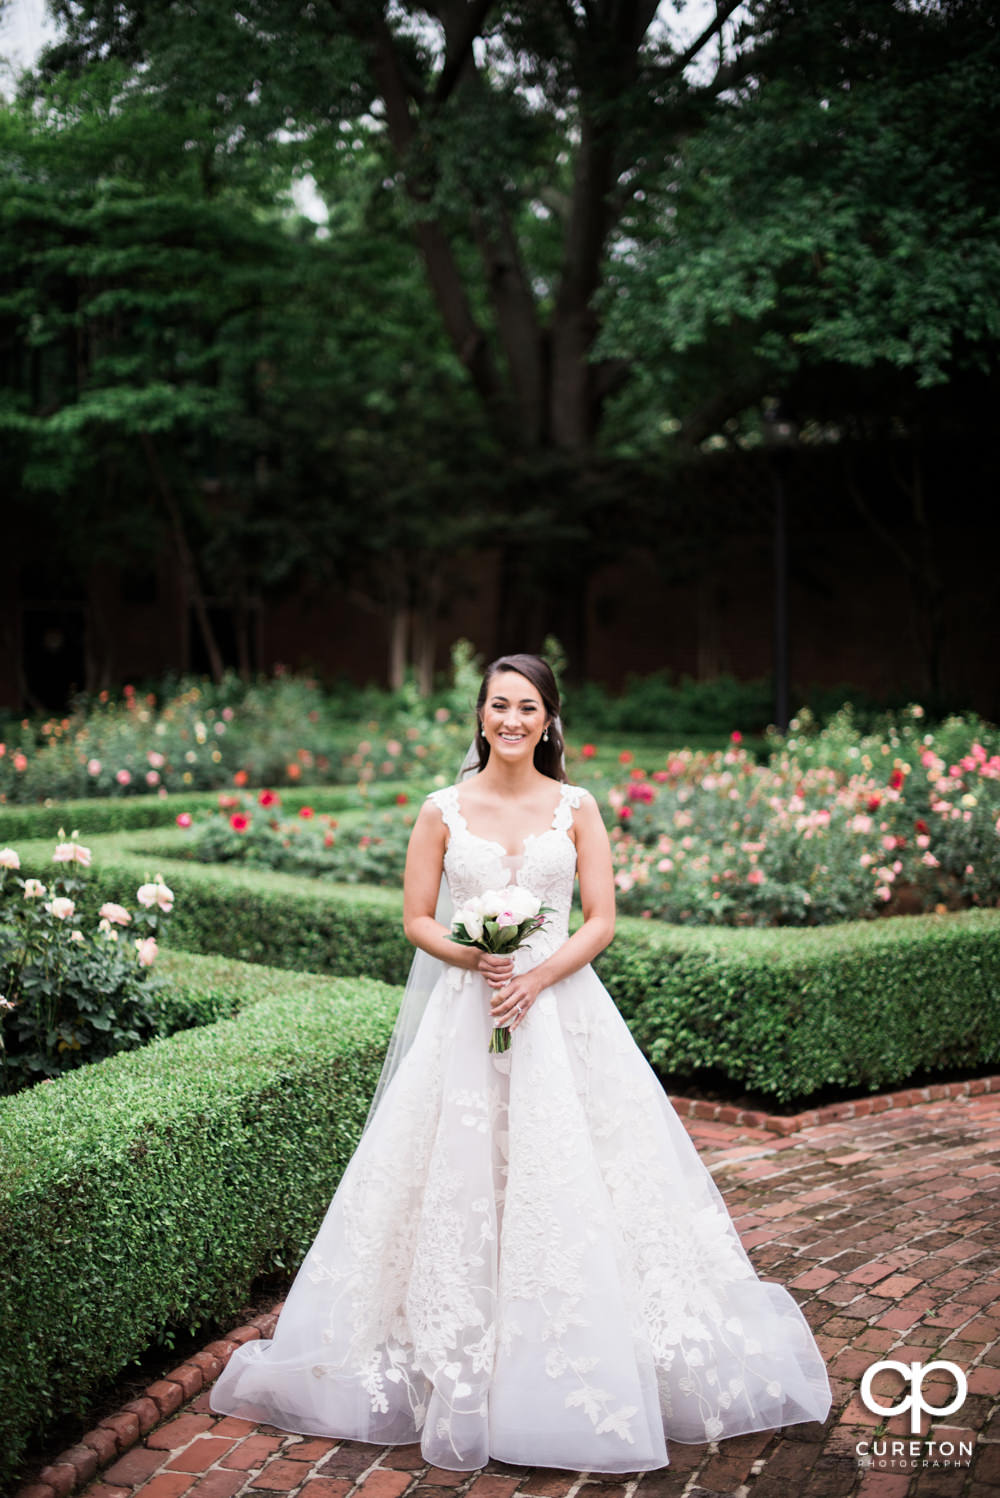 Bride standing in the middle of a rose garden.